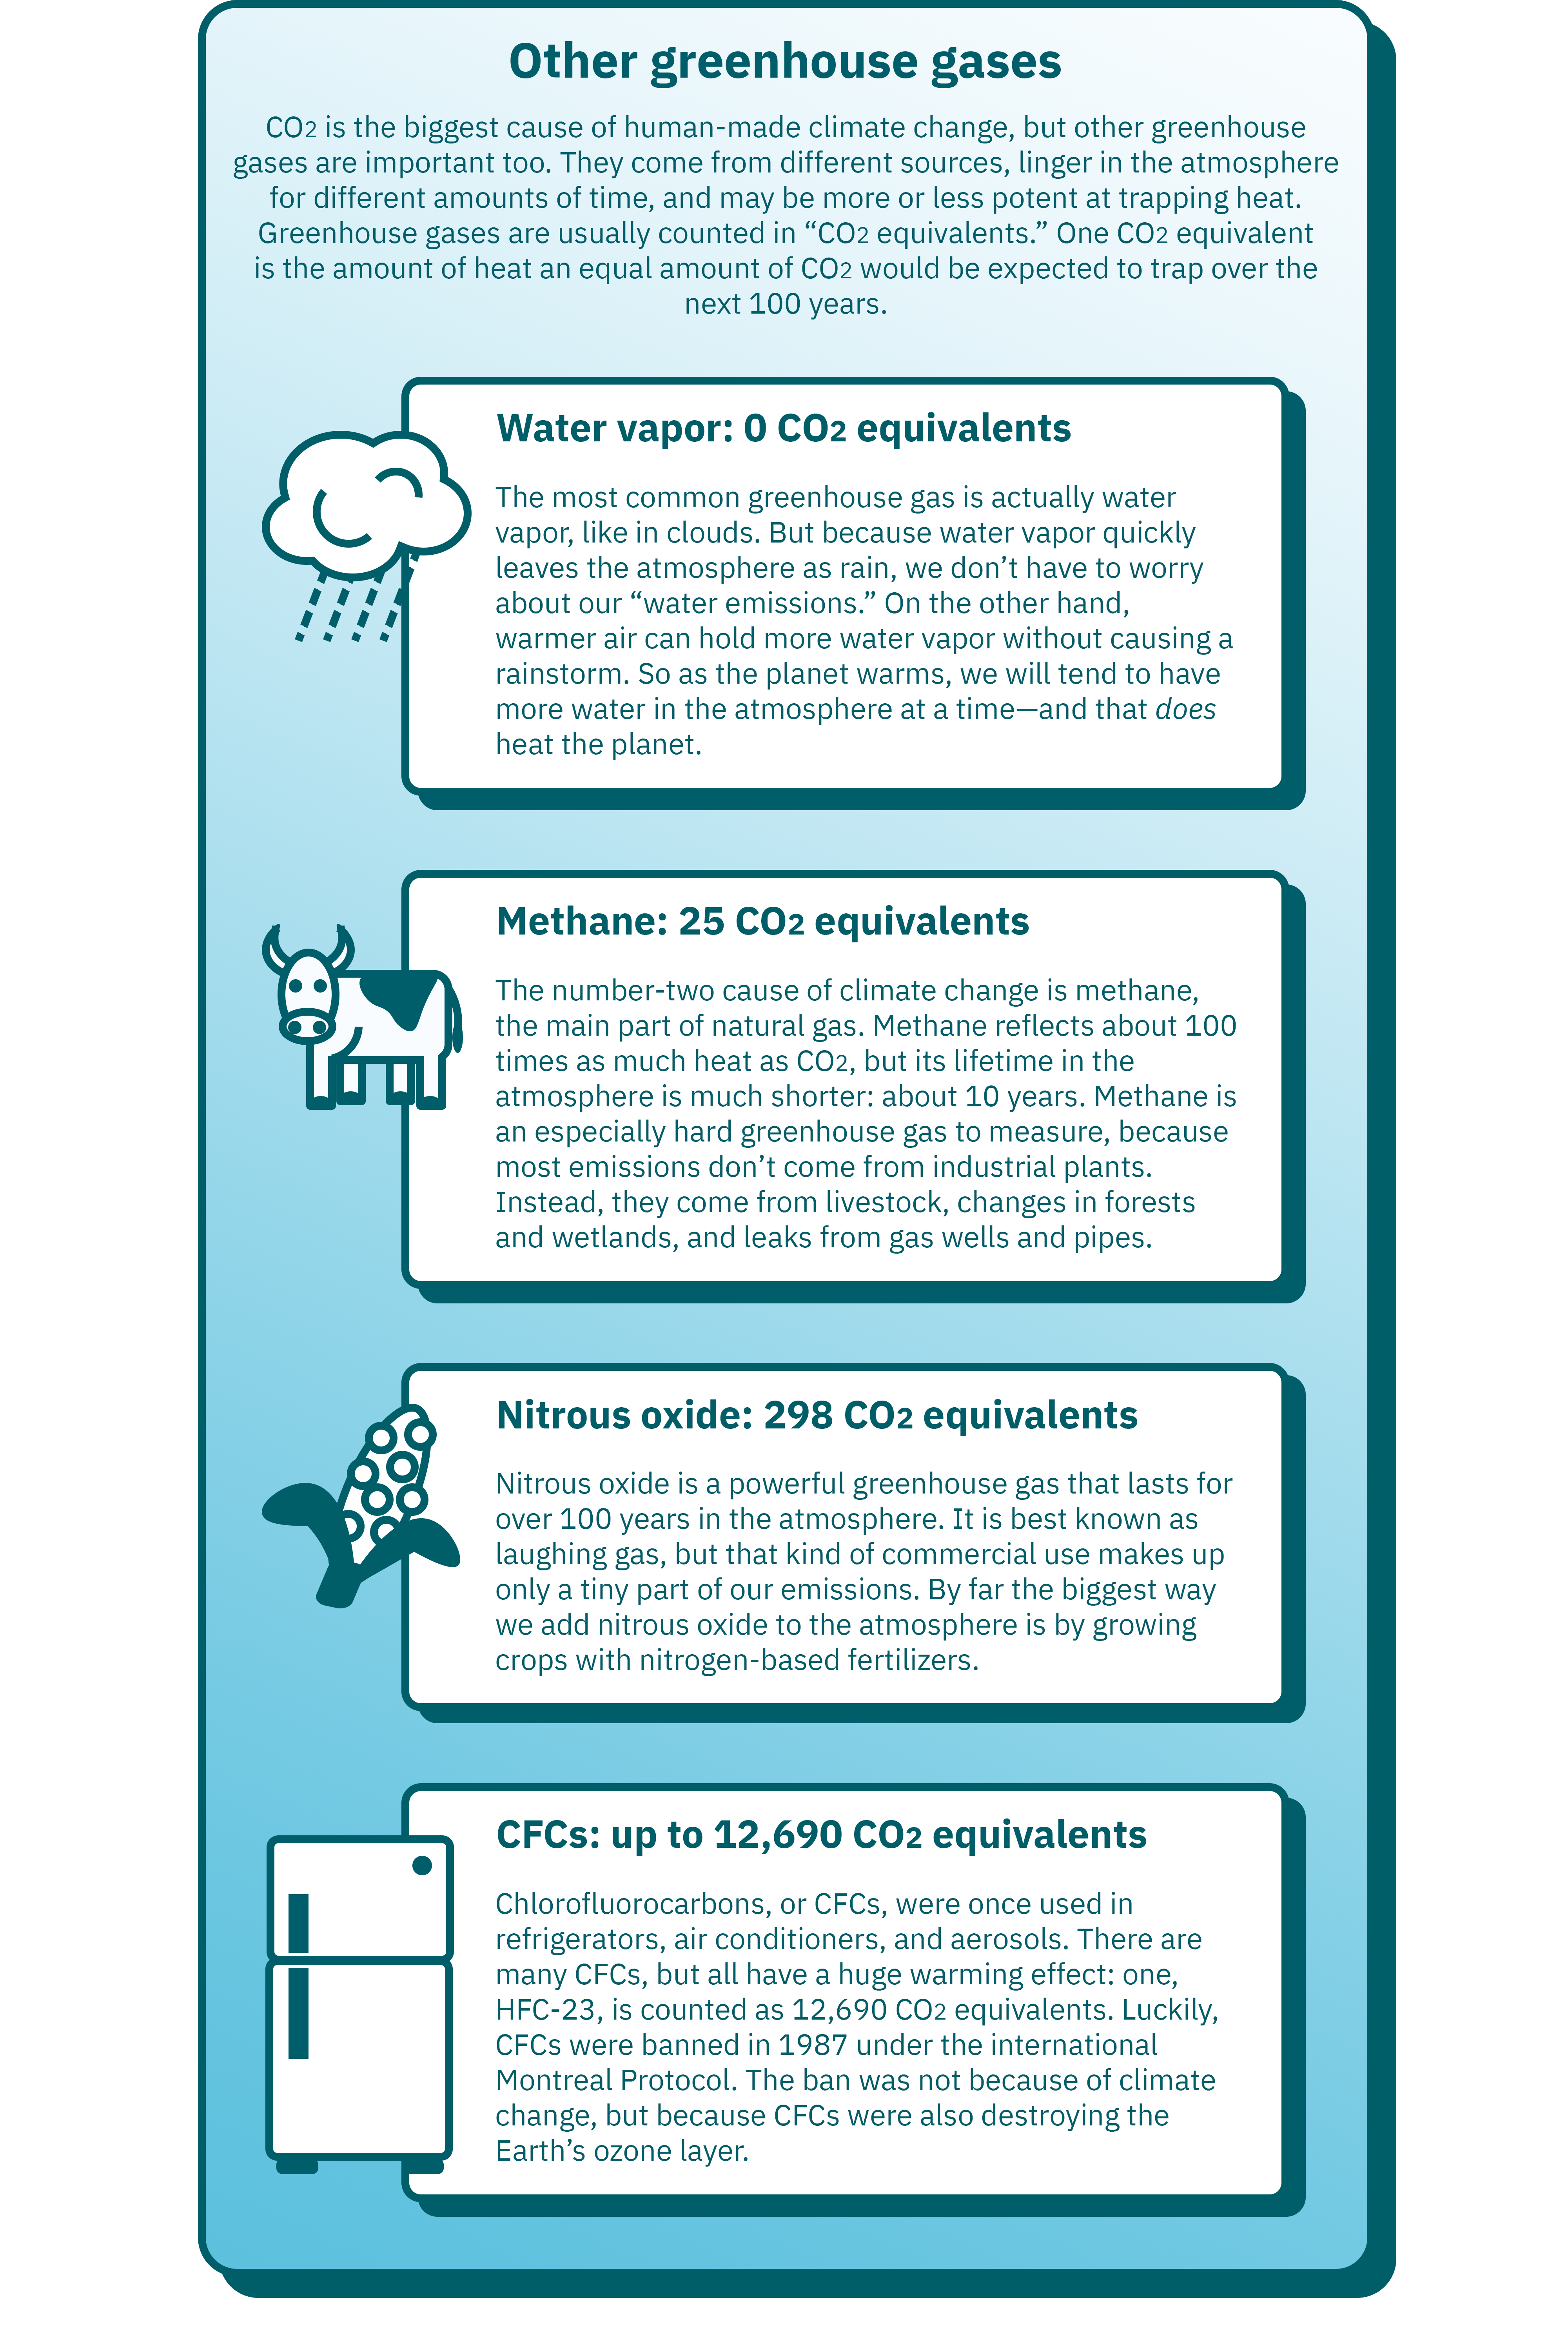 "Infographic: Other greenhouse gases. CO2 is the biggest cause of human-made climate change, but other greenhouse gases are important too. They come from different sources, linger in the atmosphere for different amounts of time, and may be more or less potent at trapping heat. Greenhouse gases are usually counted in ""CO2 equivalents."" One CO2 equivalent is the amount of heat one molecule of CO2 would be expected to trap over the next 100 years."